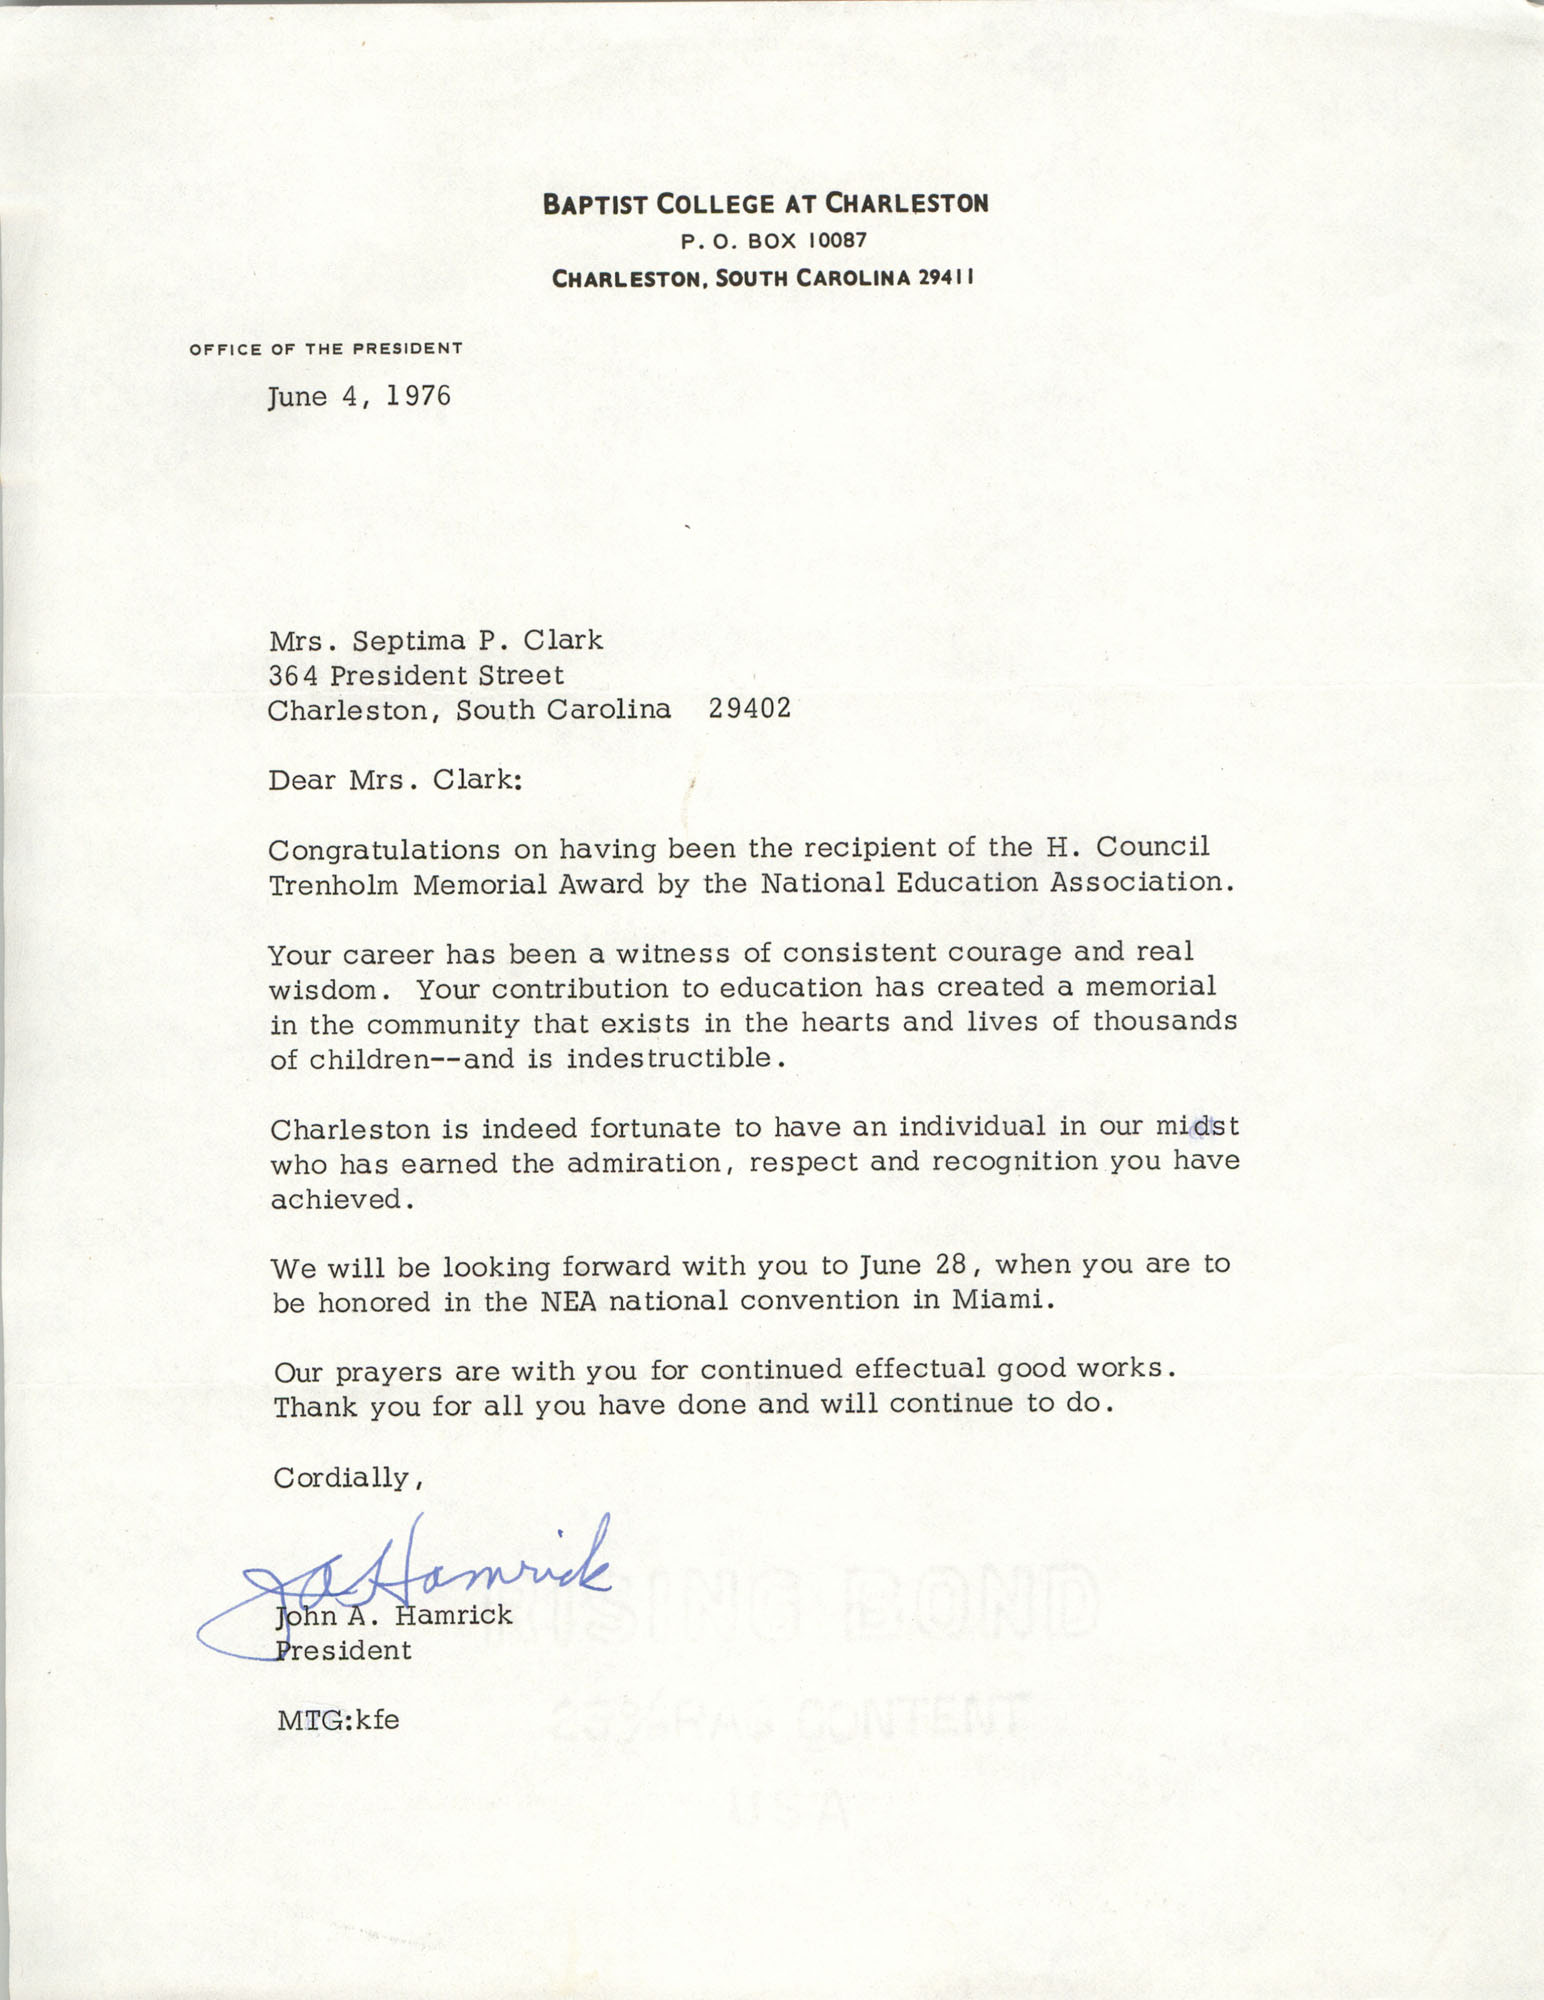 Letter from Baptist College at Charleston to Septima P. Clark, June 4, 1976